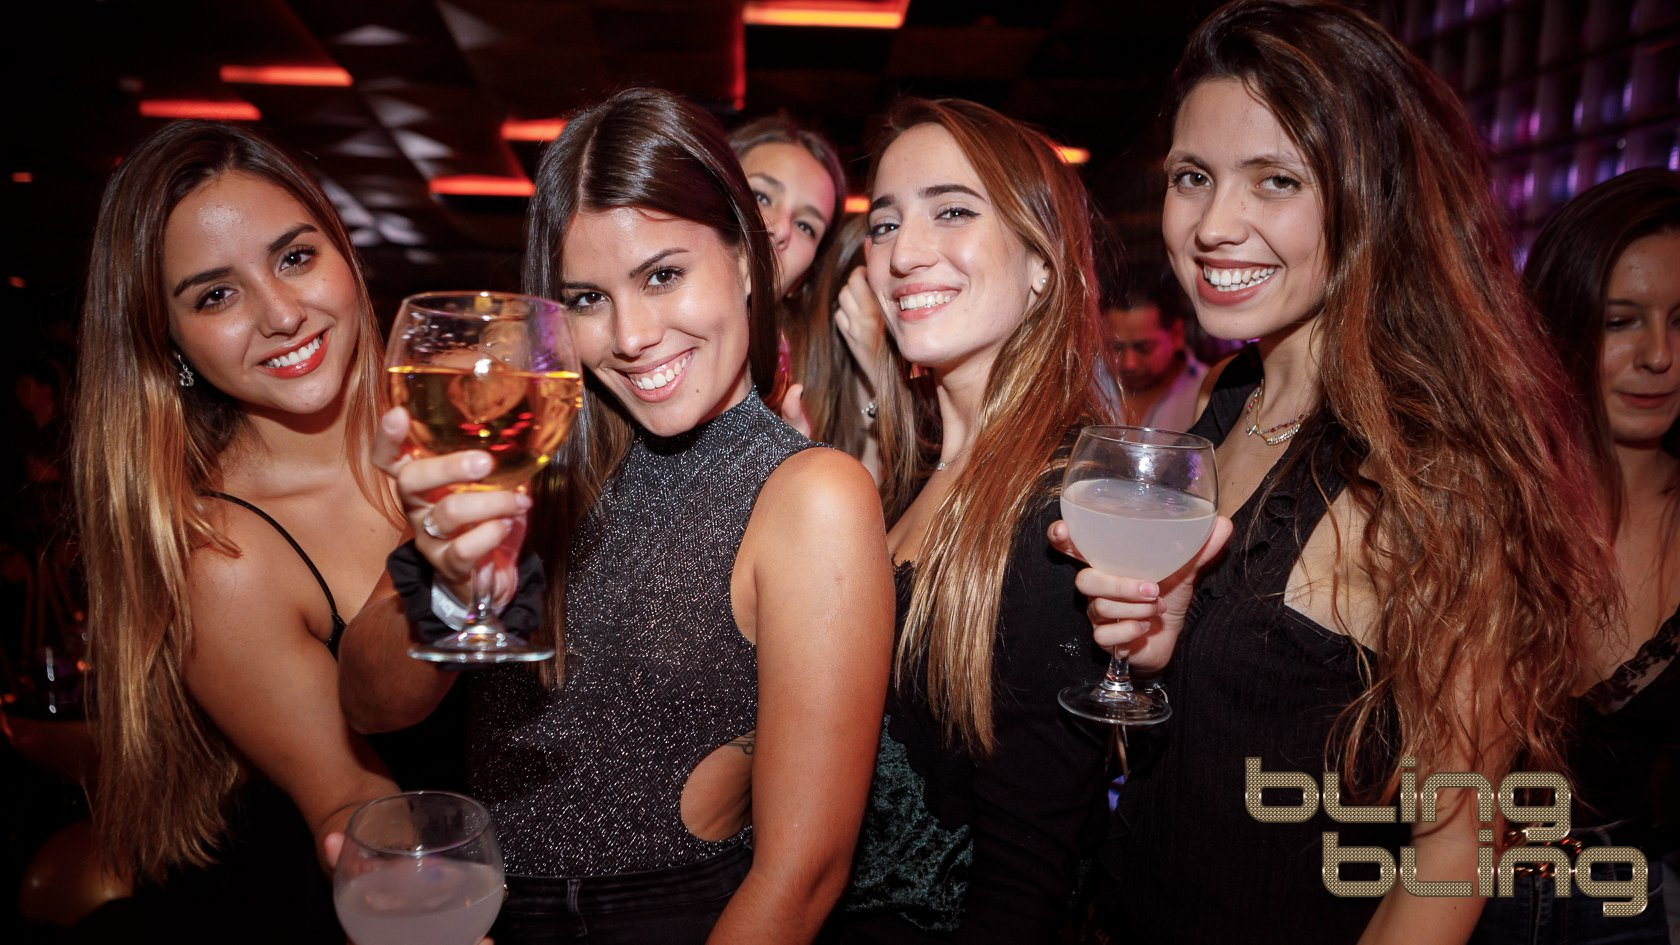 music played at bling bling barcelona